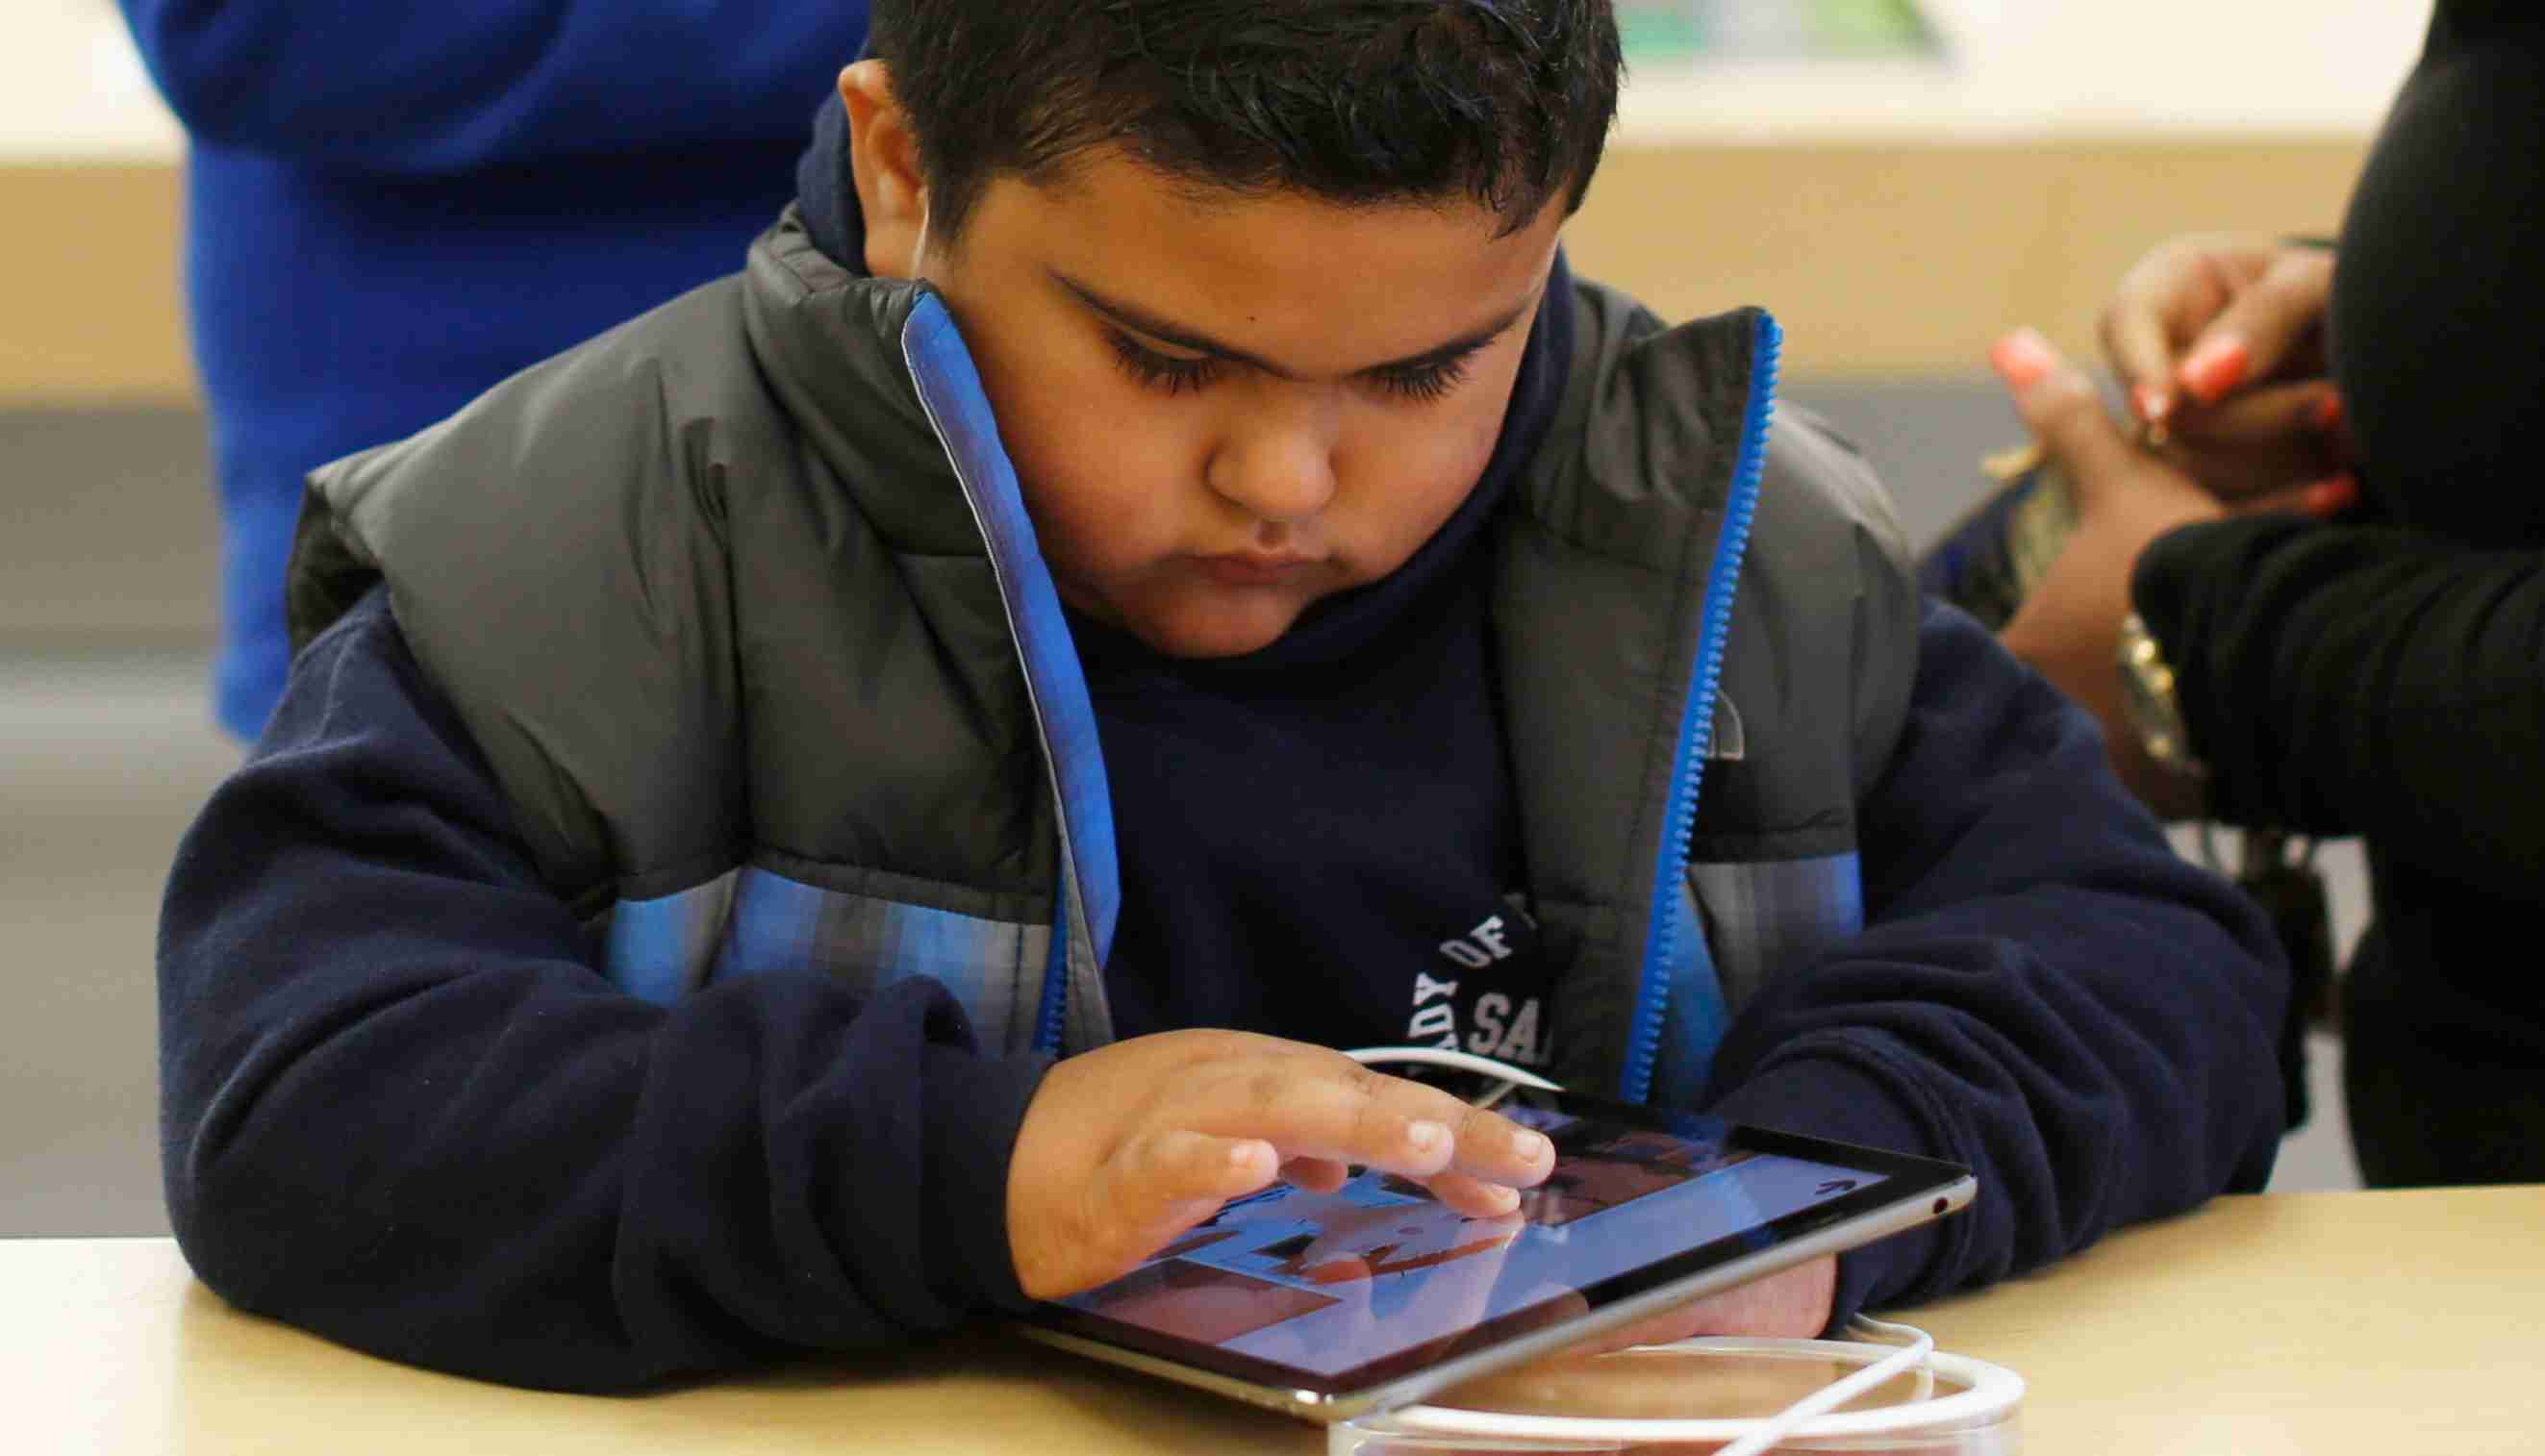 A child uses a tablet